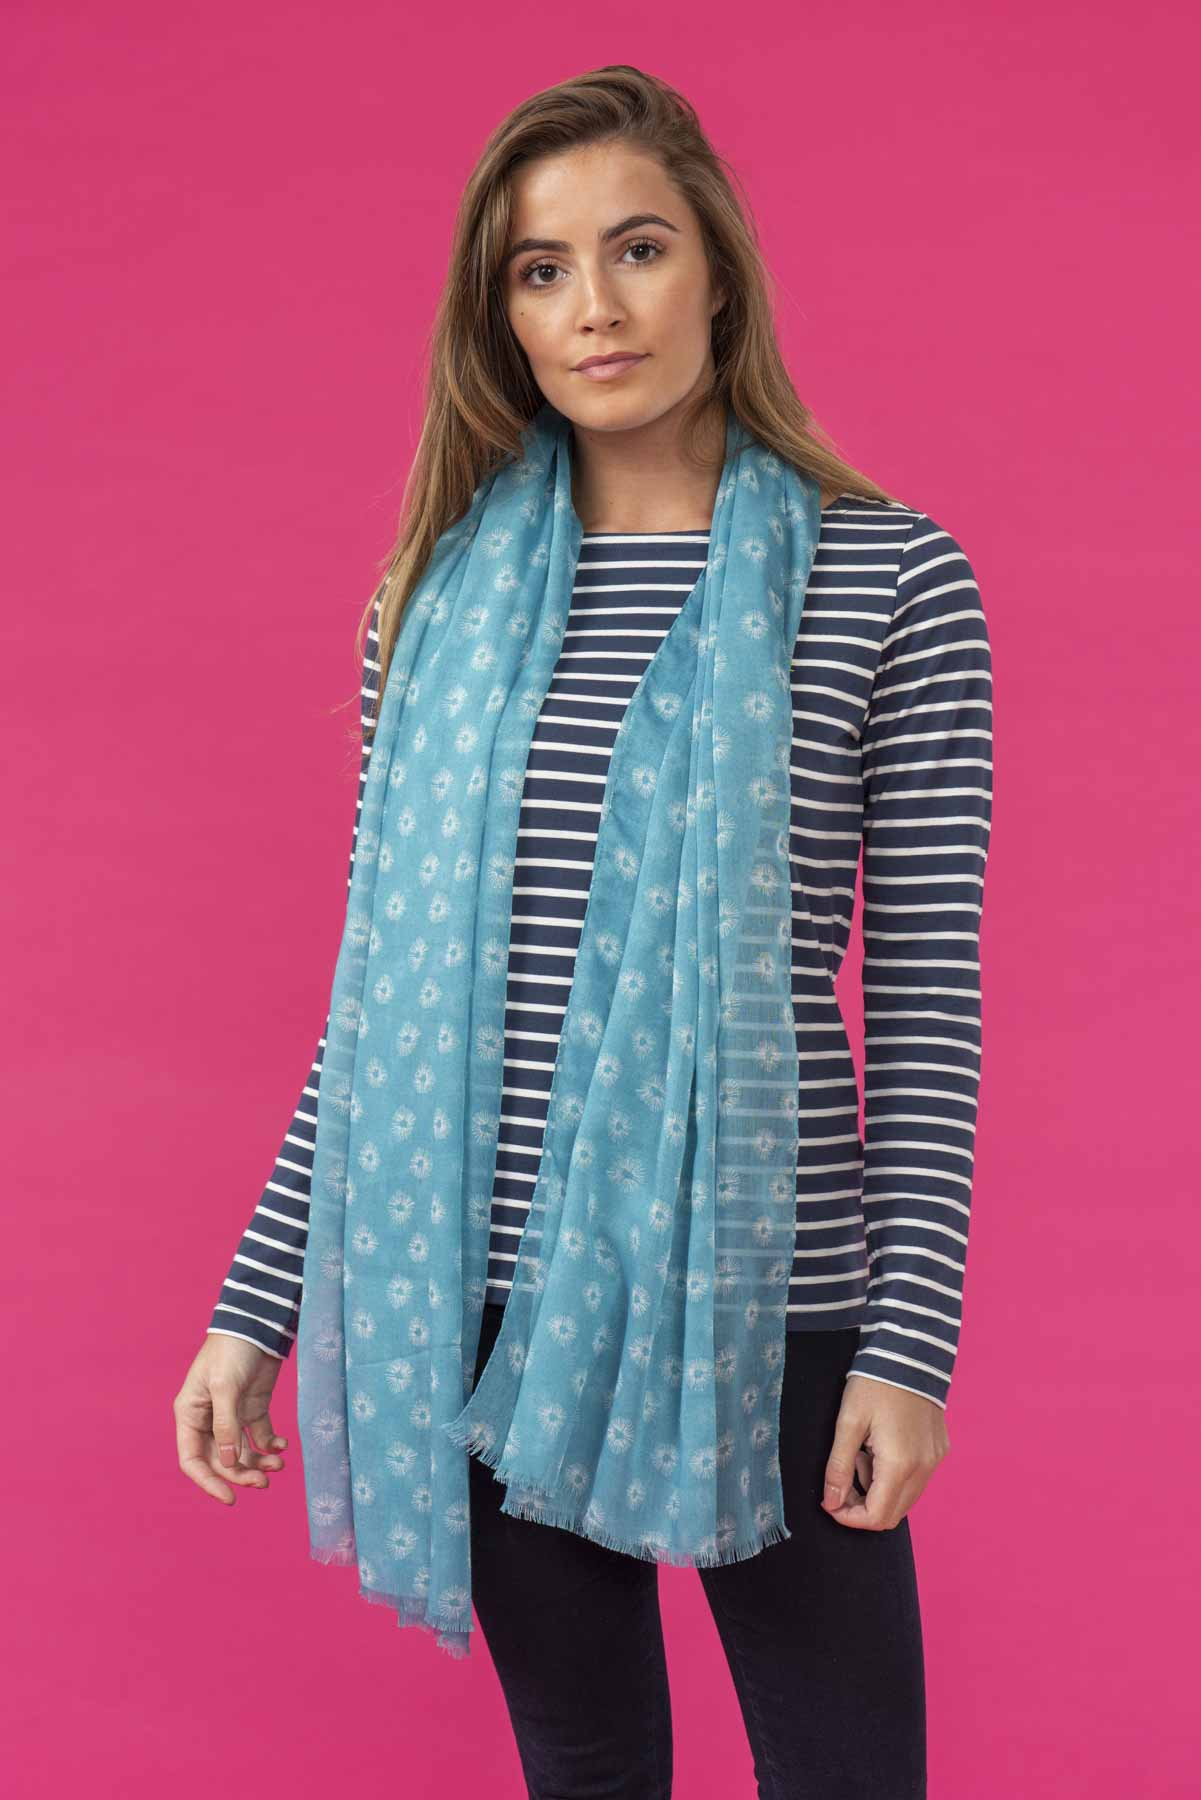 Women's Accessories - Riviera - Blue patterned scarf